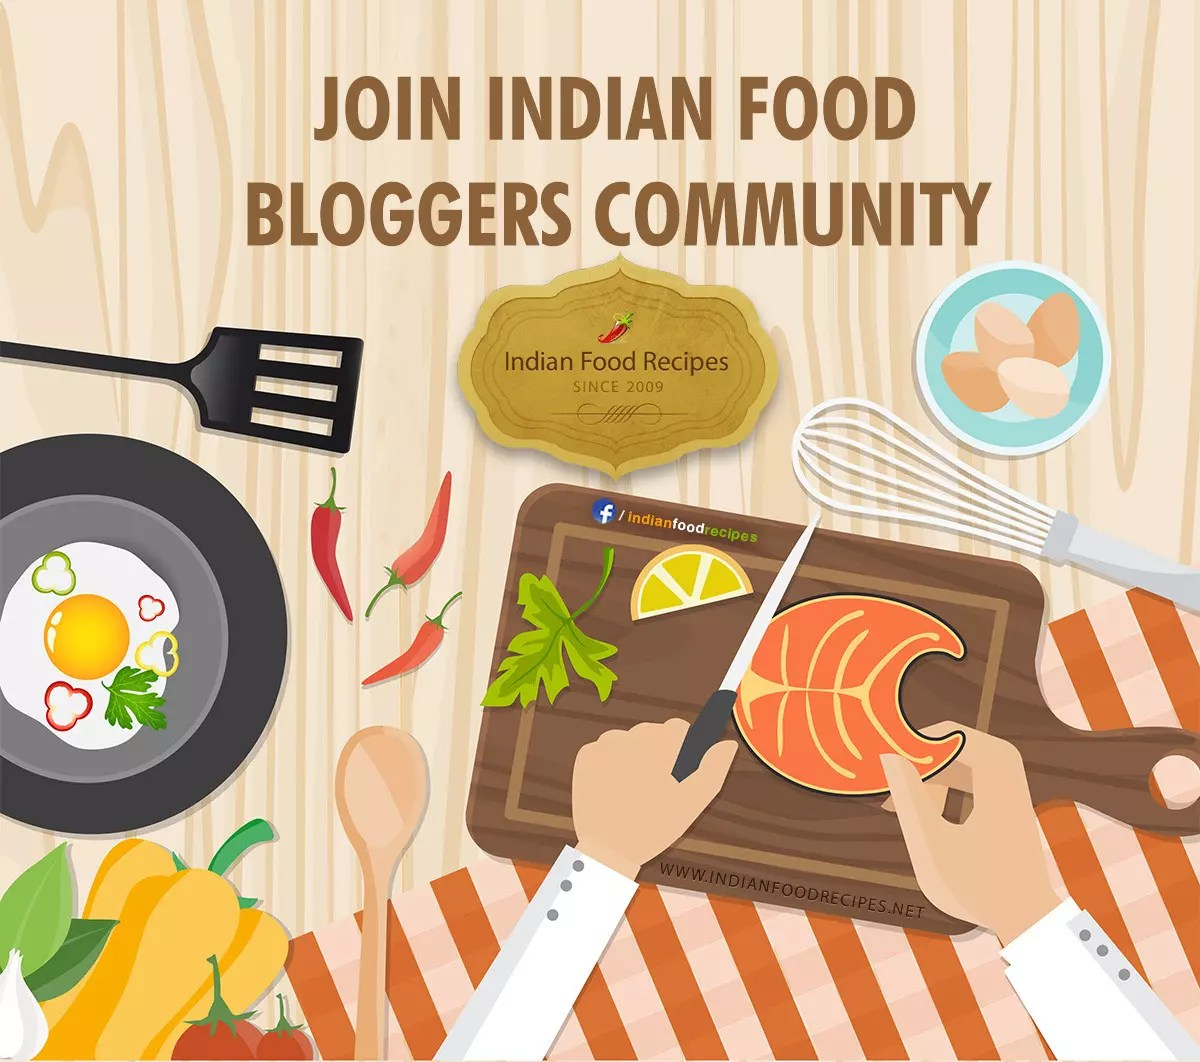 Join Indian Food Bloggers community